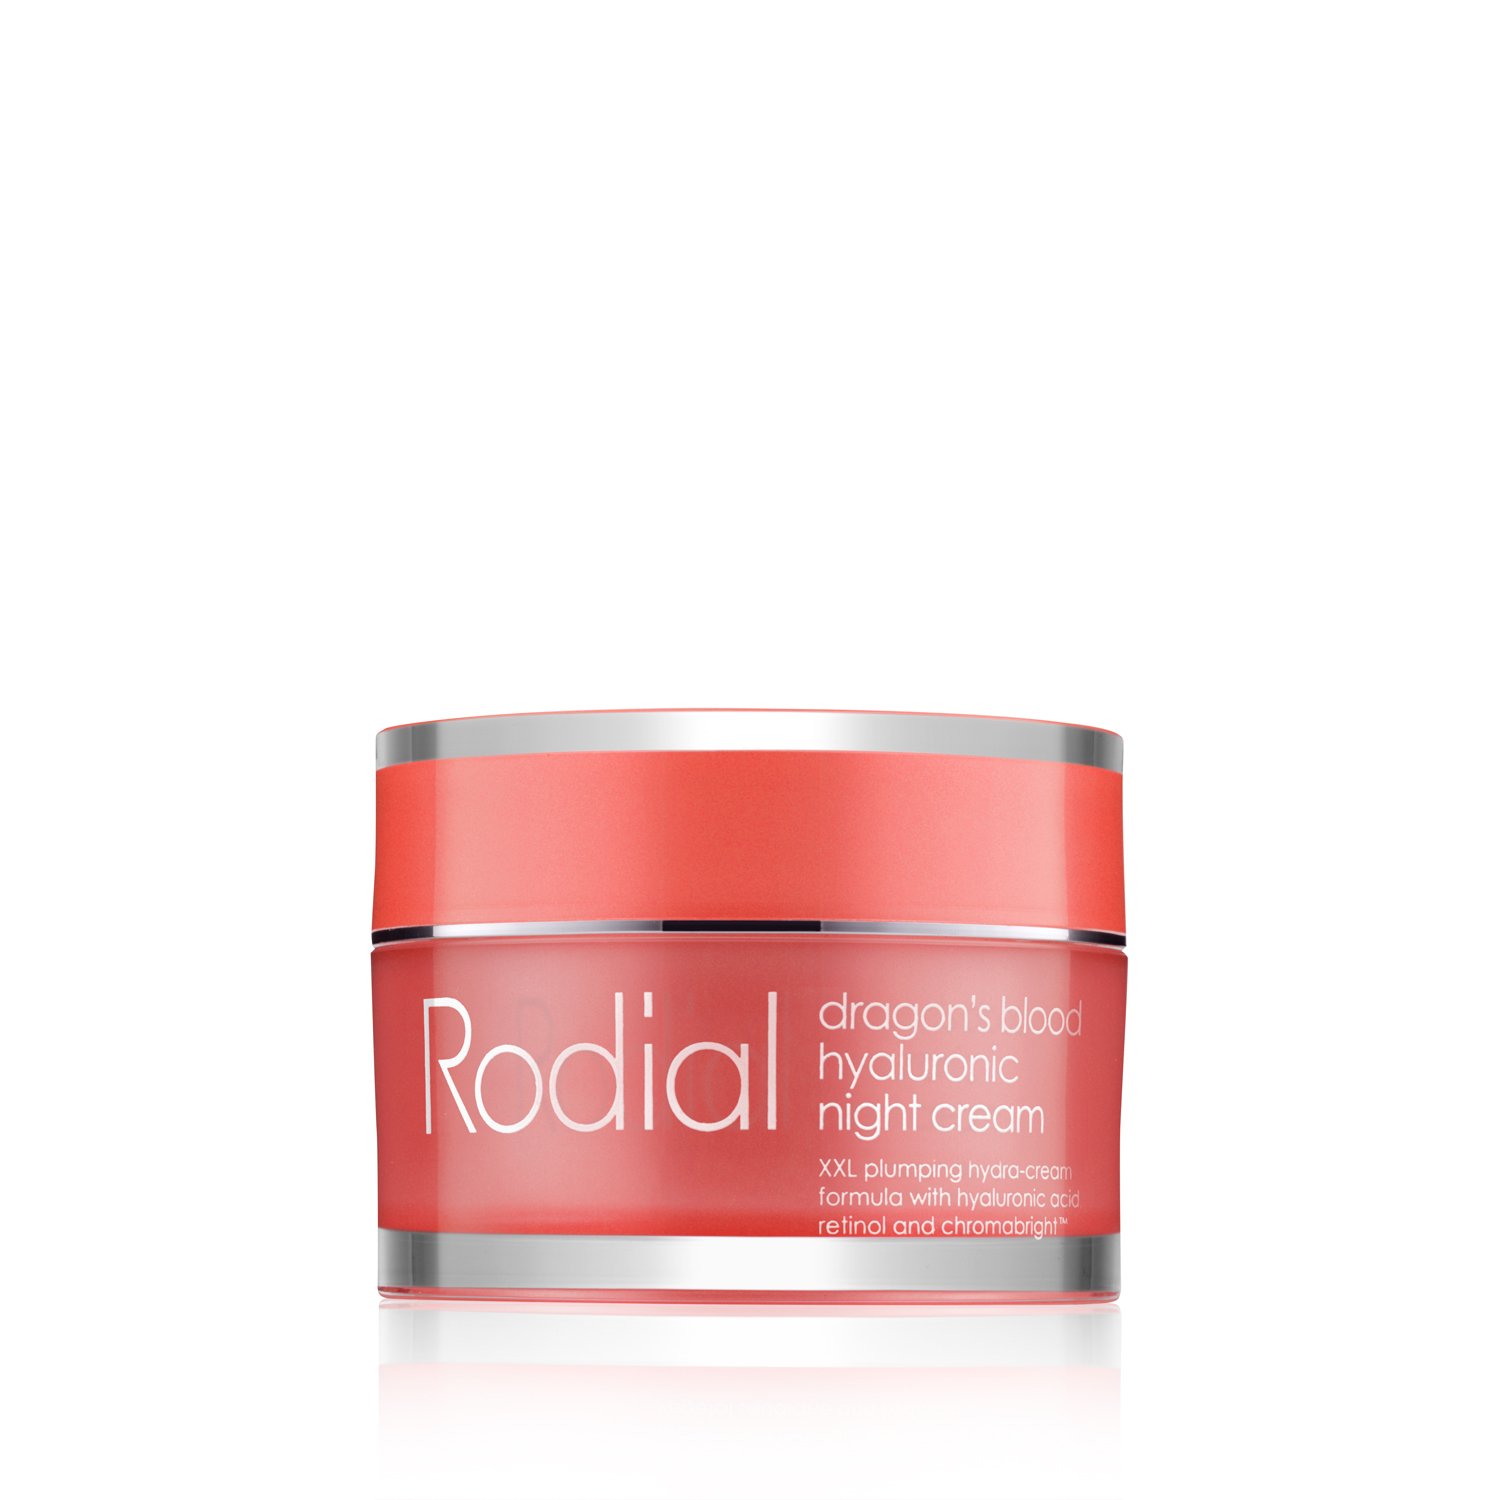 Rodial Dragon's Blood Hyaluronic Night Cream | Rodial